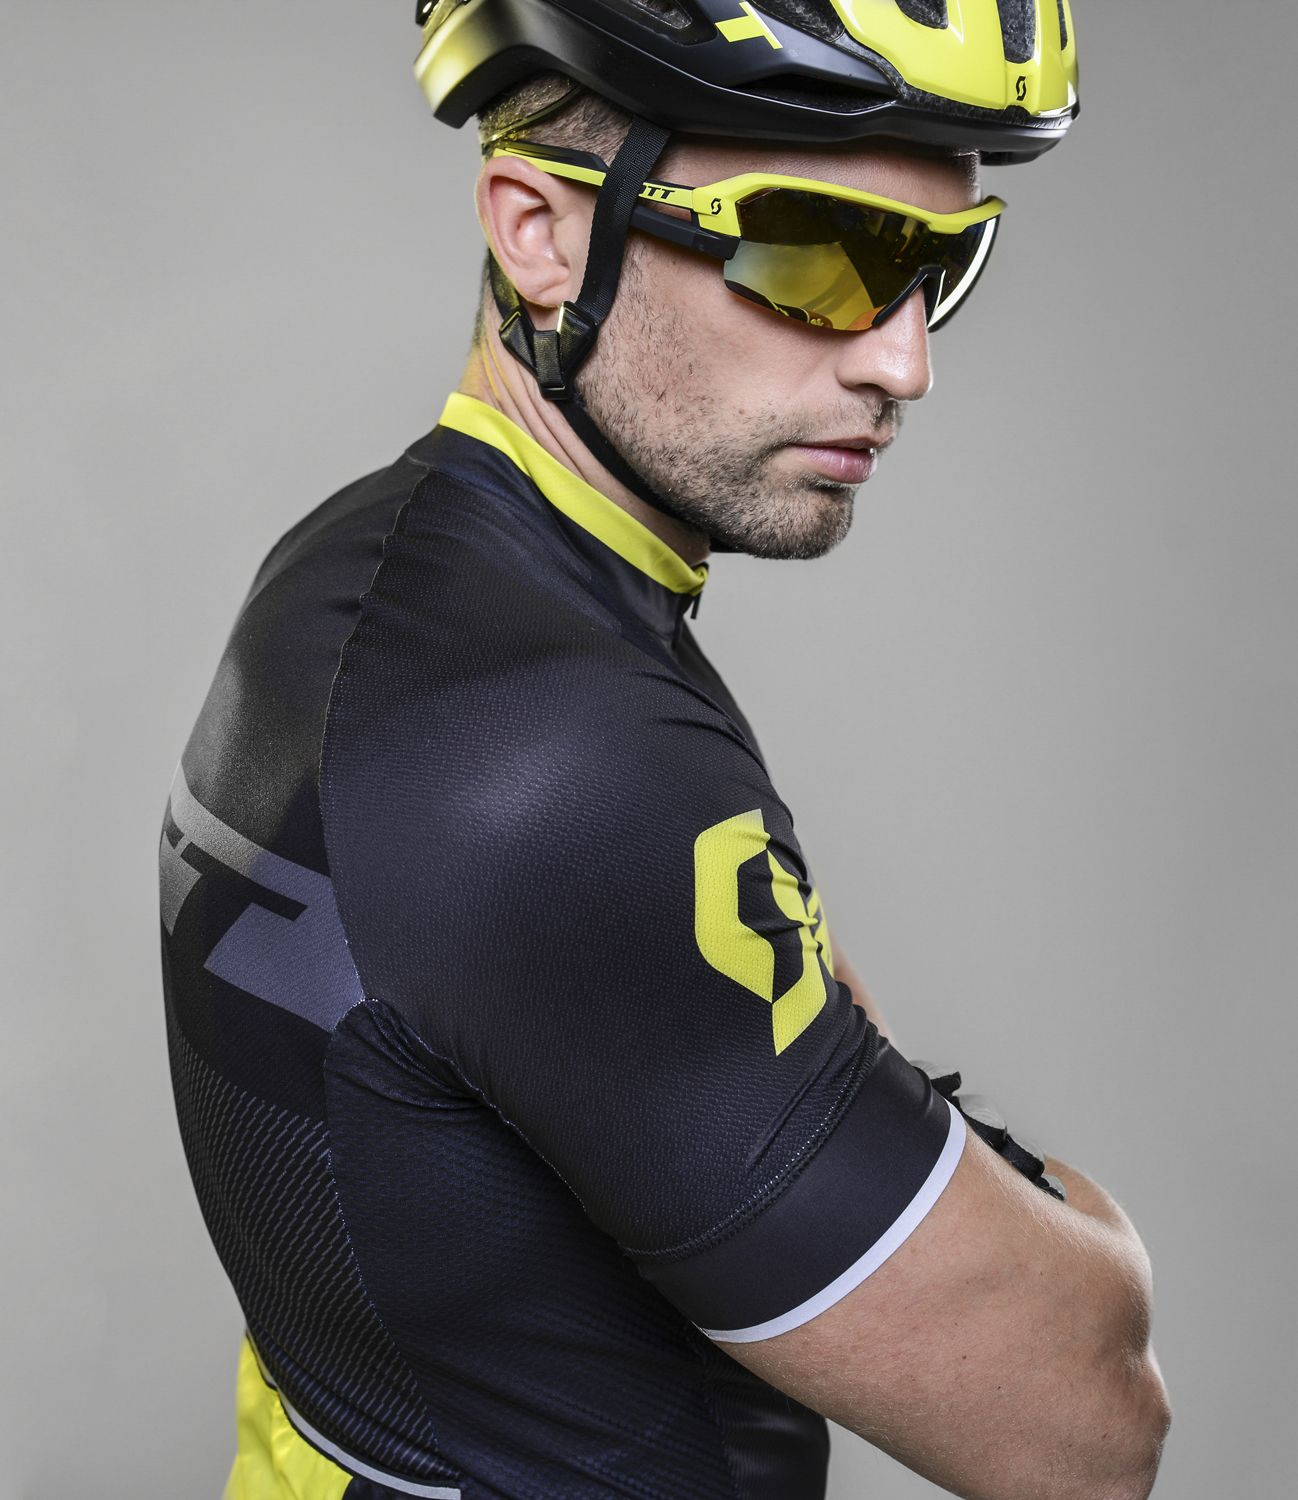 82bbb6a45 ... short sleeve cycling jersey black sulphur yellow (264821). Previous